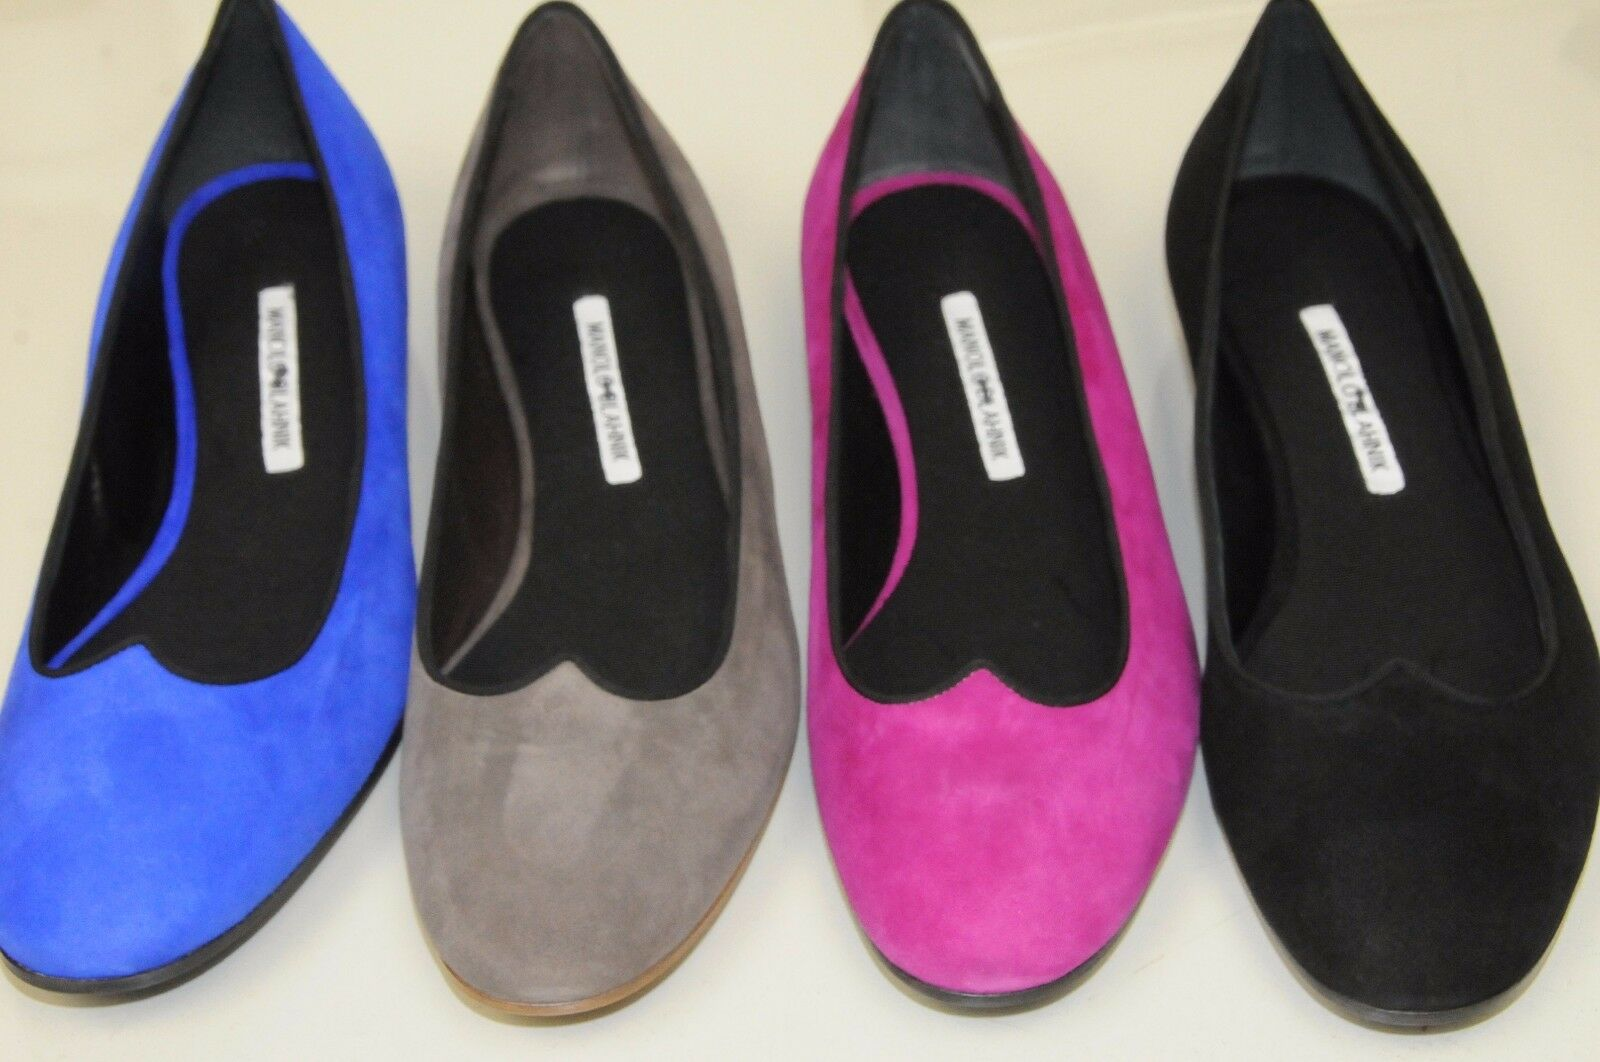 755 NEW MANOLO BLAHNIK Black Pink Royal bluee Taupe Suede ESPER Flats SHOES